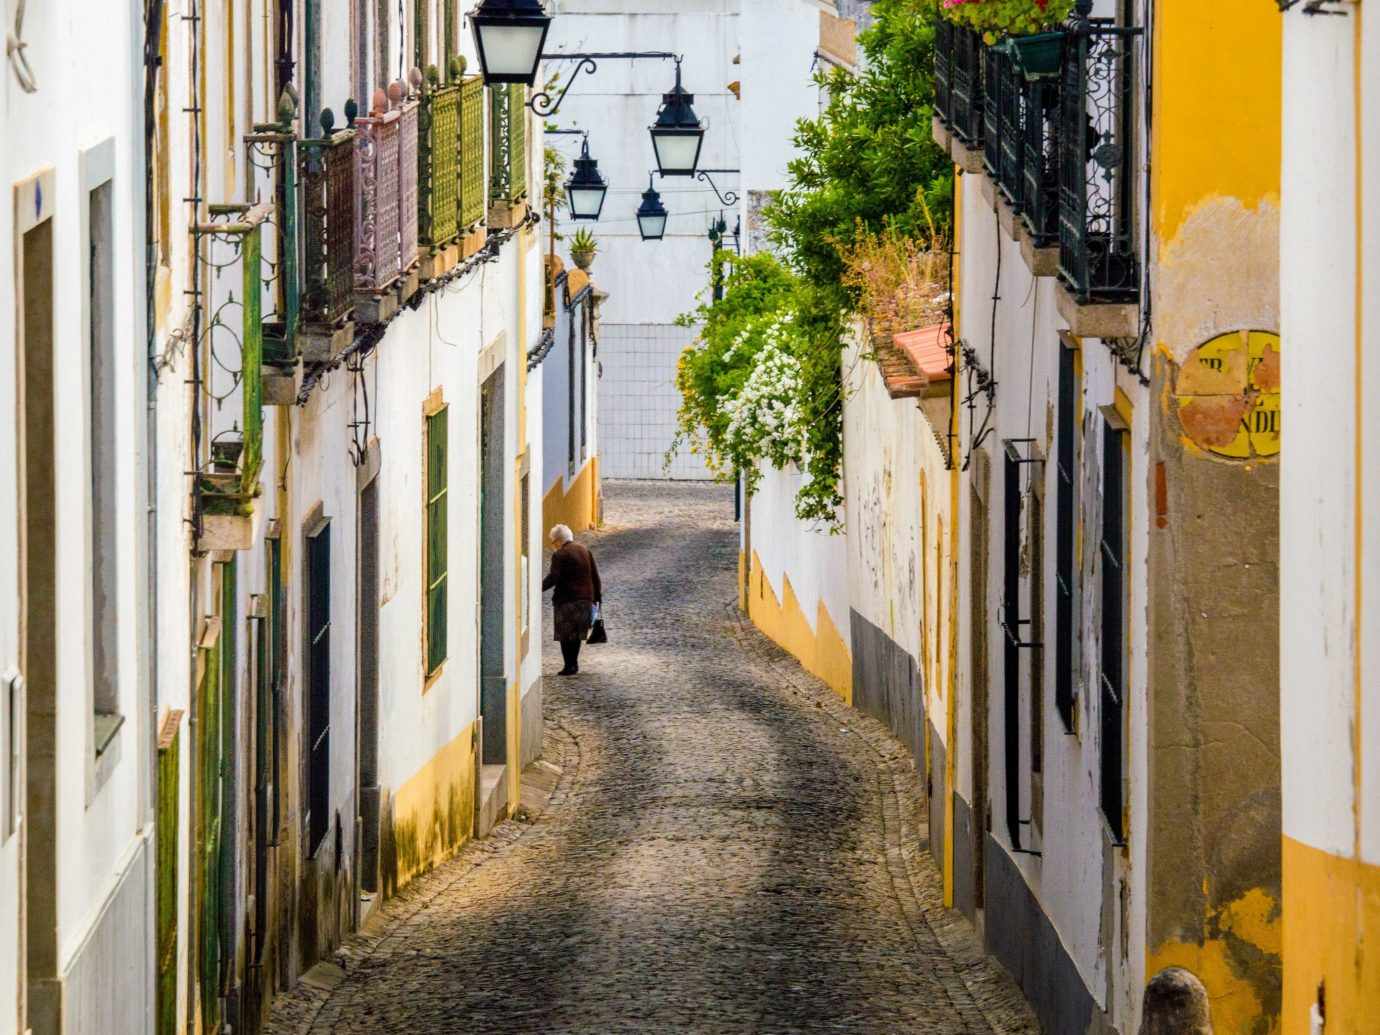 way sidewalk yellow Town road street alley outdoor infrastructure neighbourhood scene house City window facade tree lane